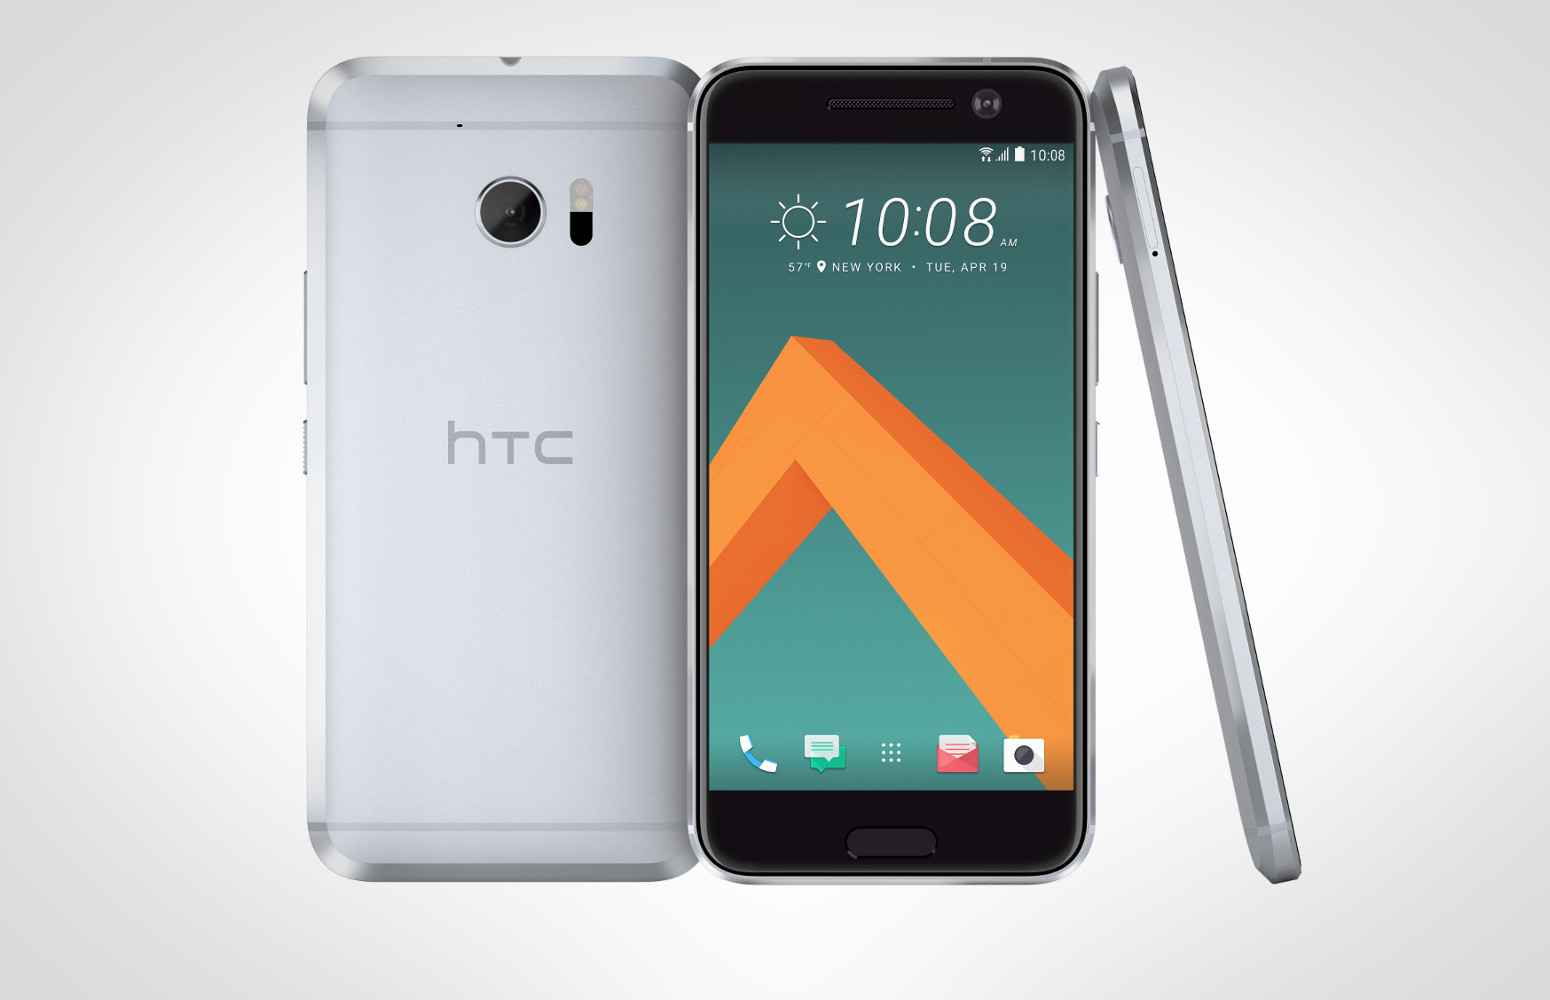 htc 10 prix caract ristiques et disponibilit android mt. Black Bedroom Furniture Sets. Home Design Ideas